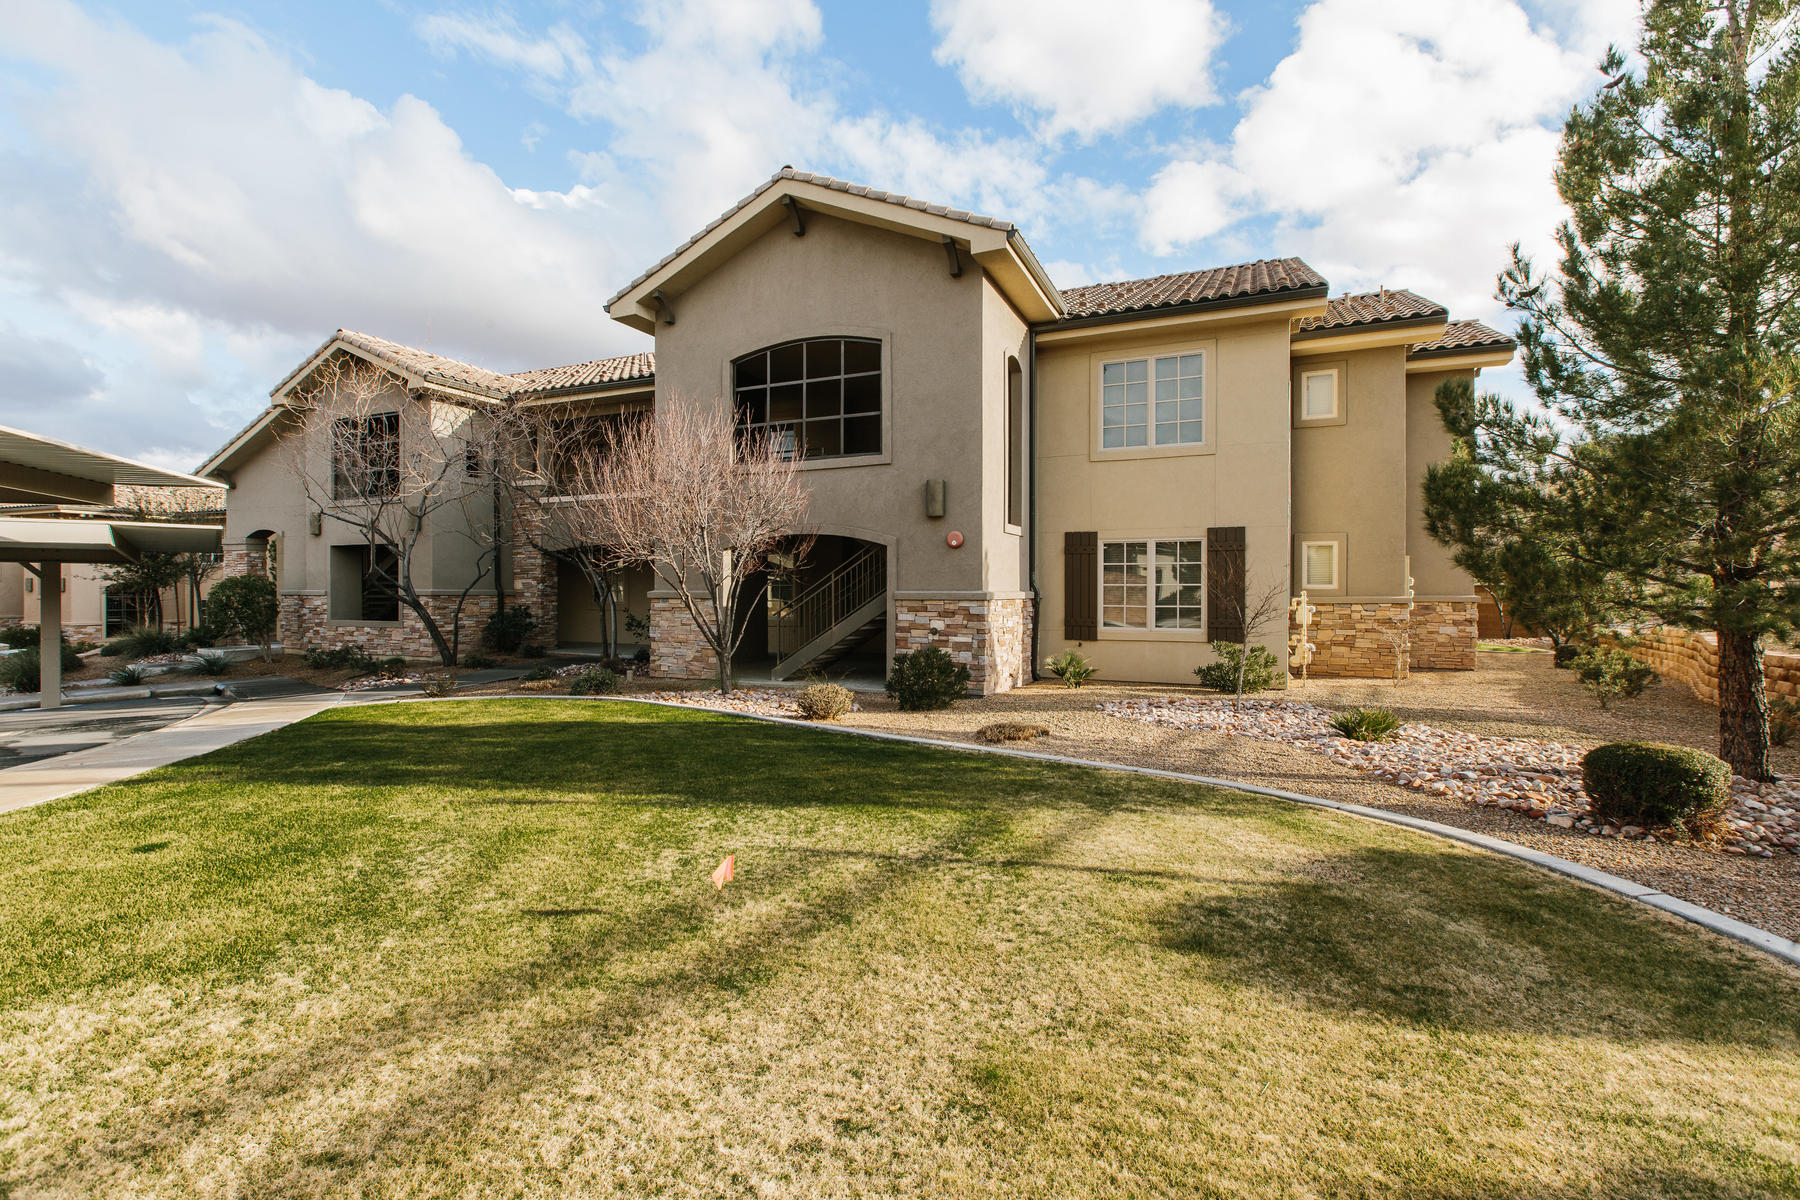 Single Family Home for Sale at Home Without the Hassle 810 S Dixie Dr. #1214 St. George, Utah 84770 United States